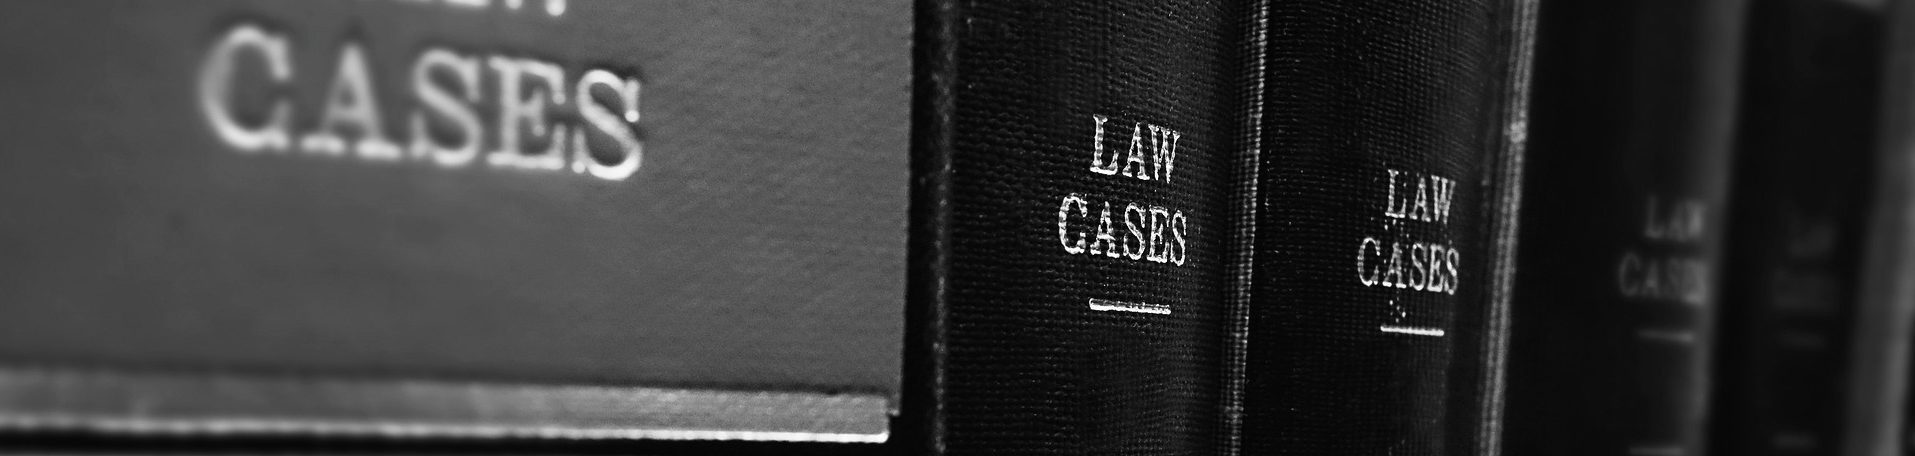 criminal appeal case law books